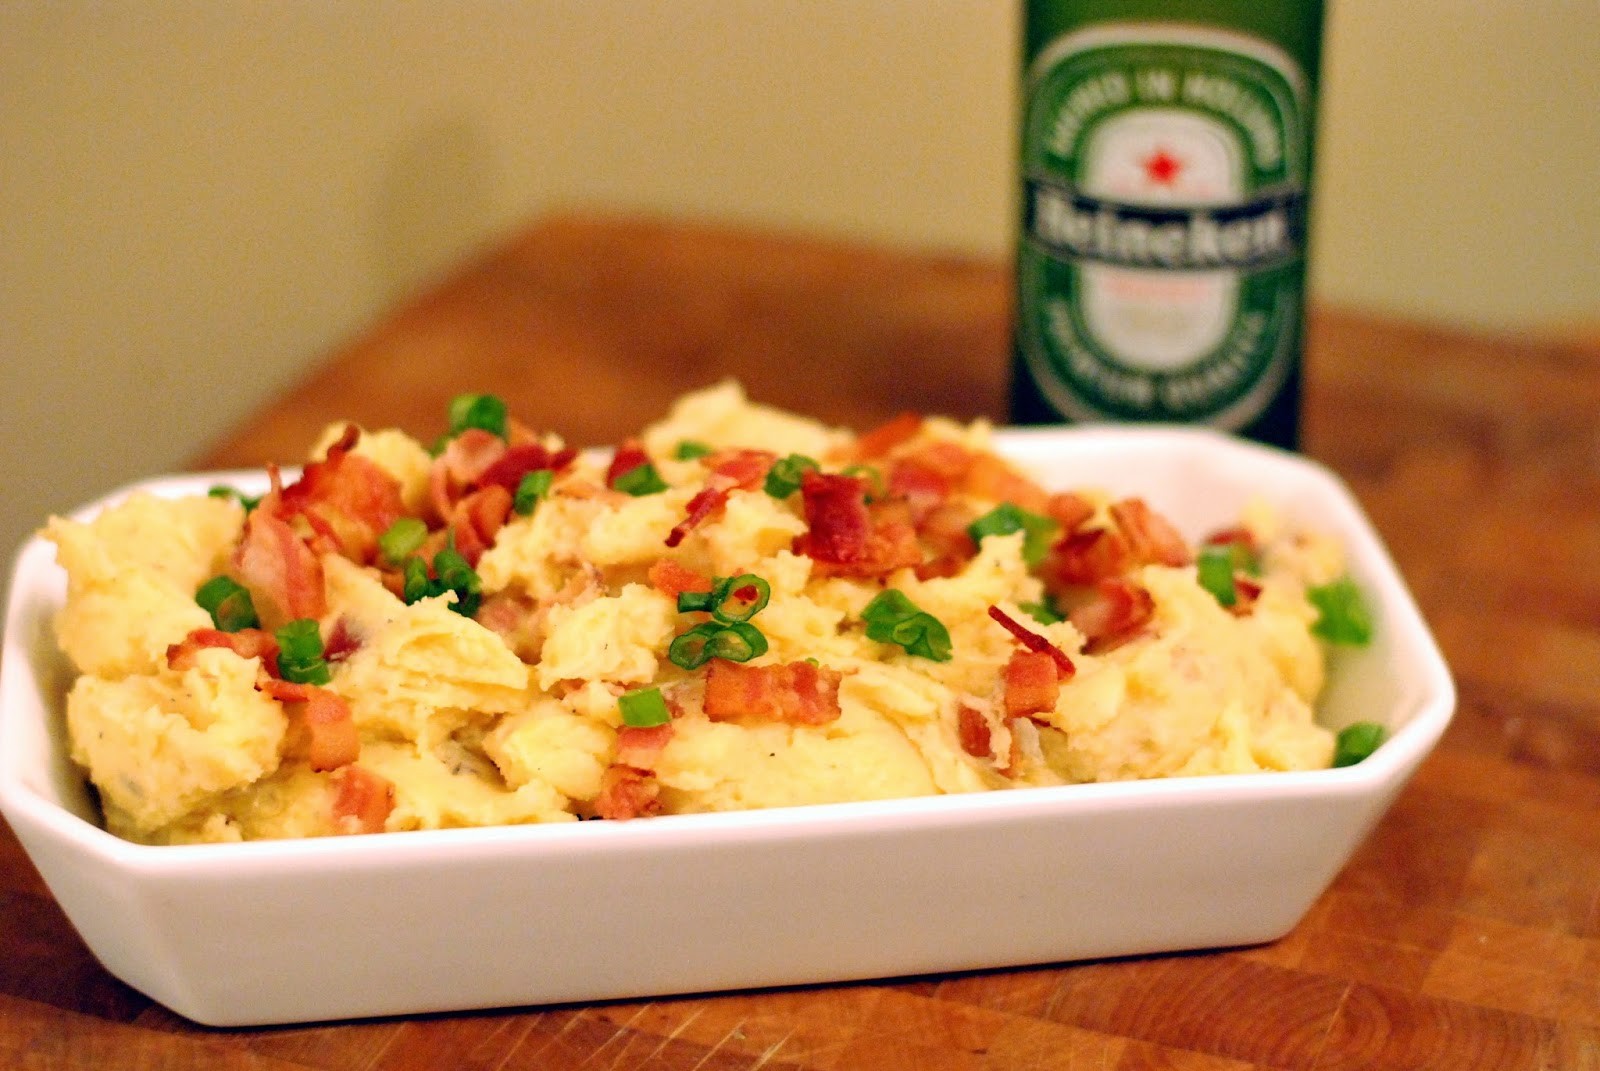 Smoked Chicken With Cheddar/Beer Sauce Over Mashed Potatoes Recipes ...